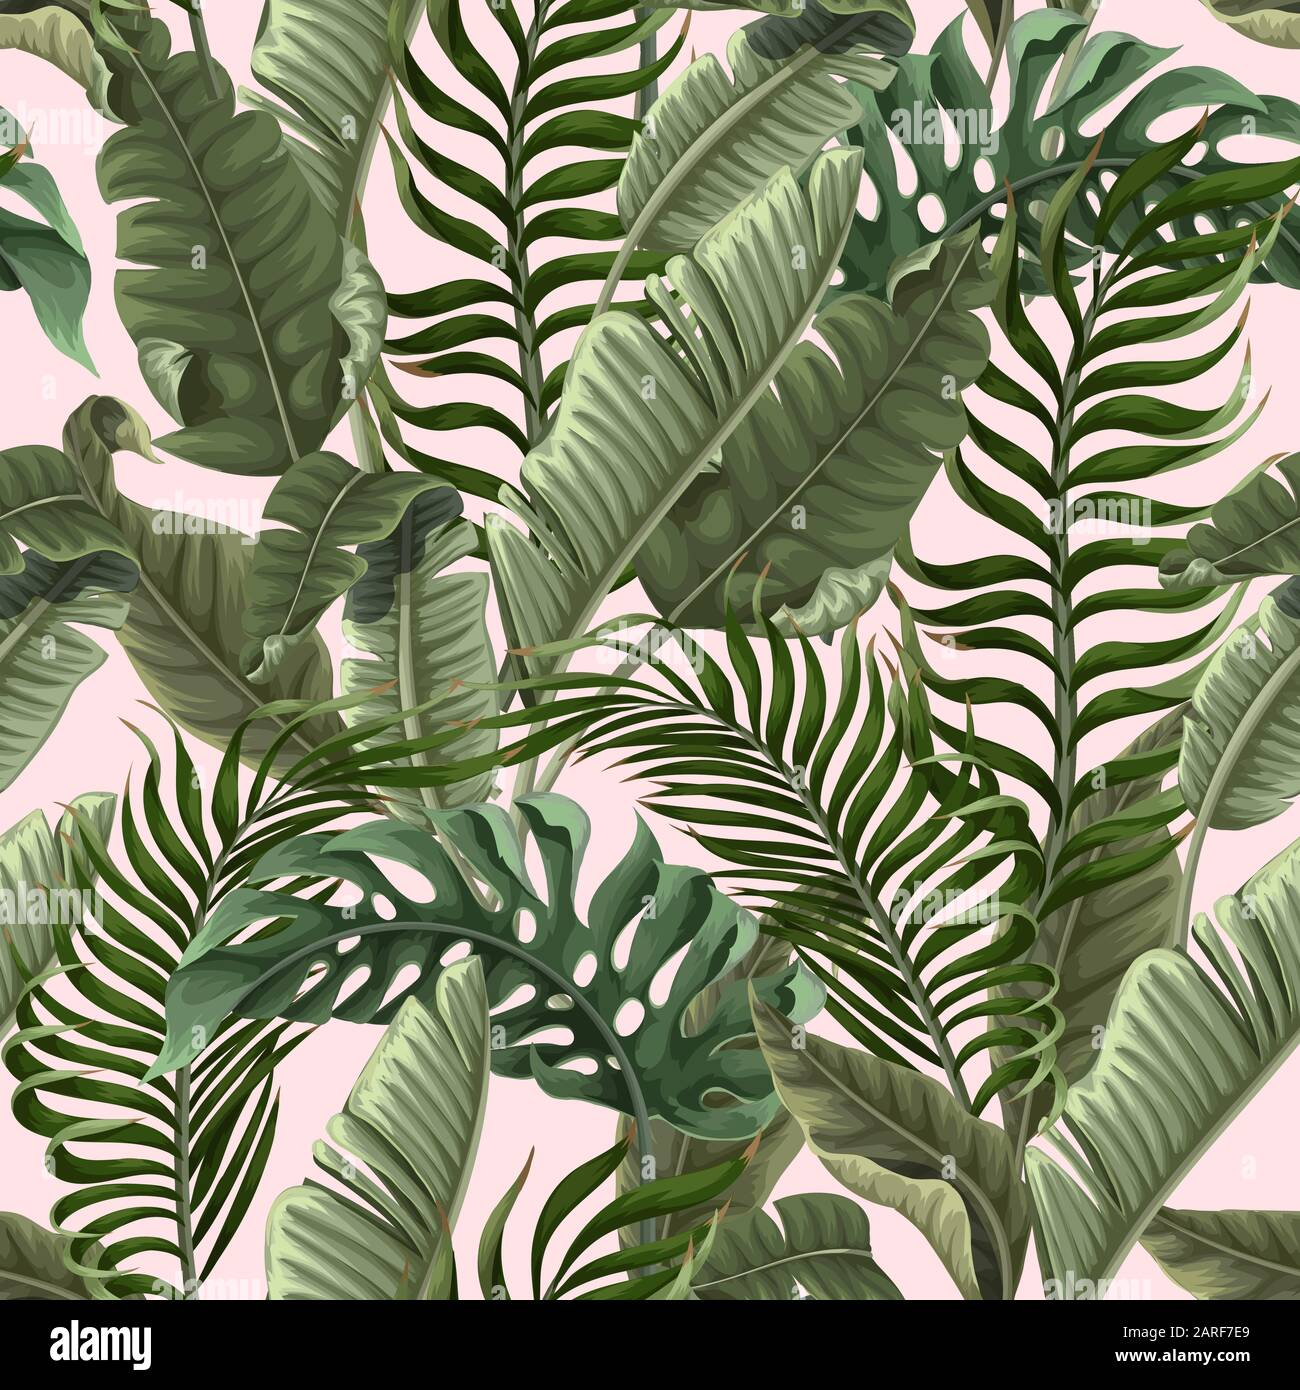 Seamless Pattern With Tropical Leaves On Pink Background Vector Stock Vector Image Art Alamy Low angle view of colorful pink and green tropical leaves of maranta (prayer plant). https www alamy com seamless pattern with tropical leaves on pink background vector image341469249 html